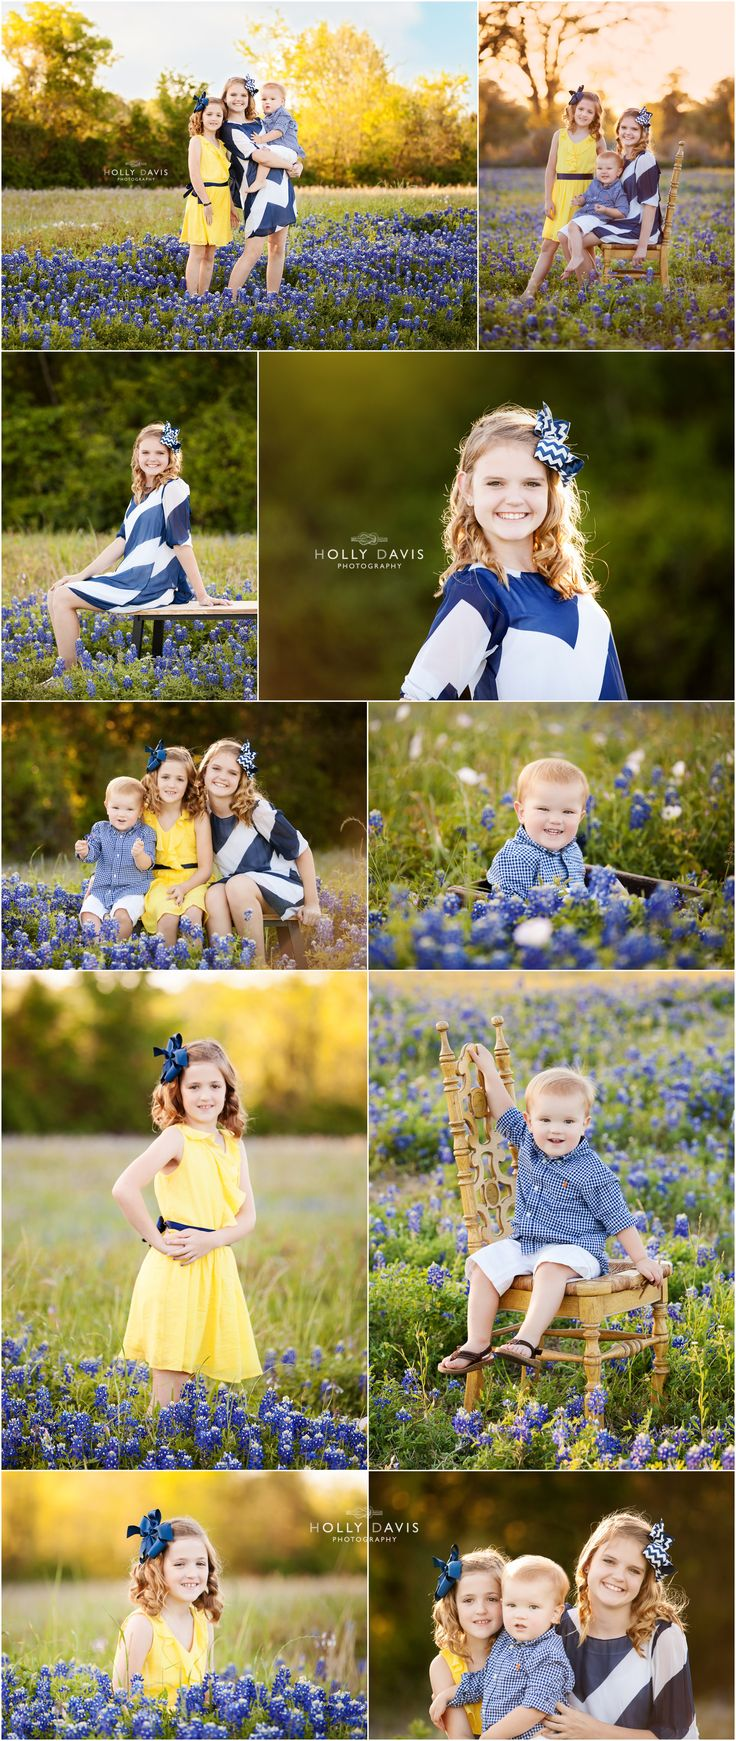 Bluebonnet sessions, Posing Kids, Sibling Poses Holly Davis Photography   The Woodlands, TX